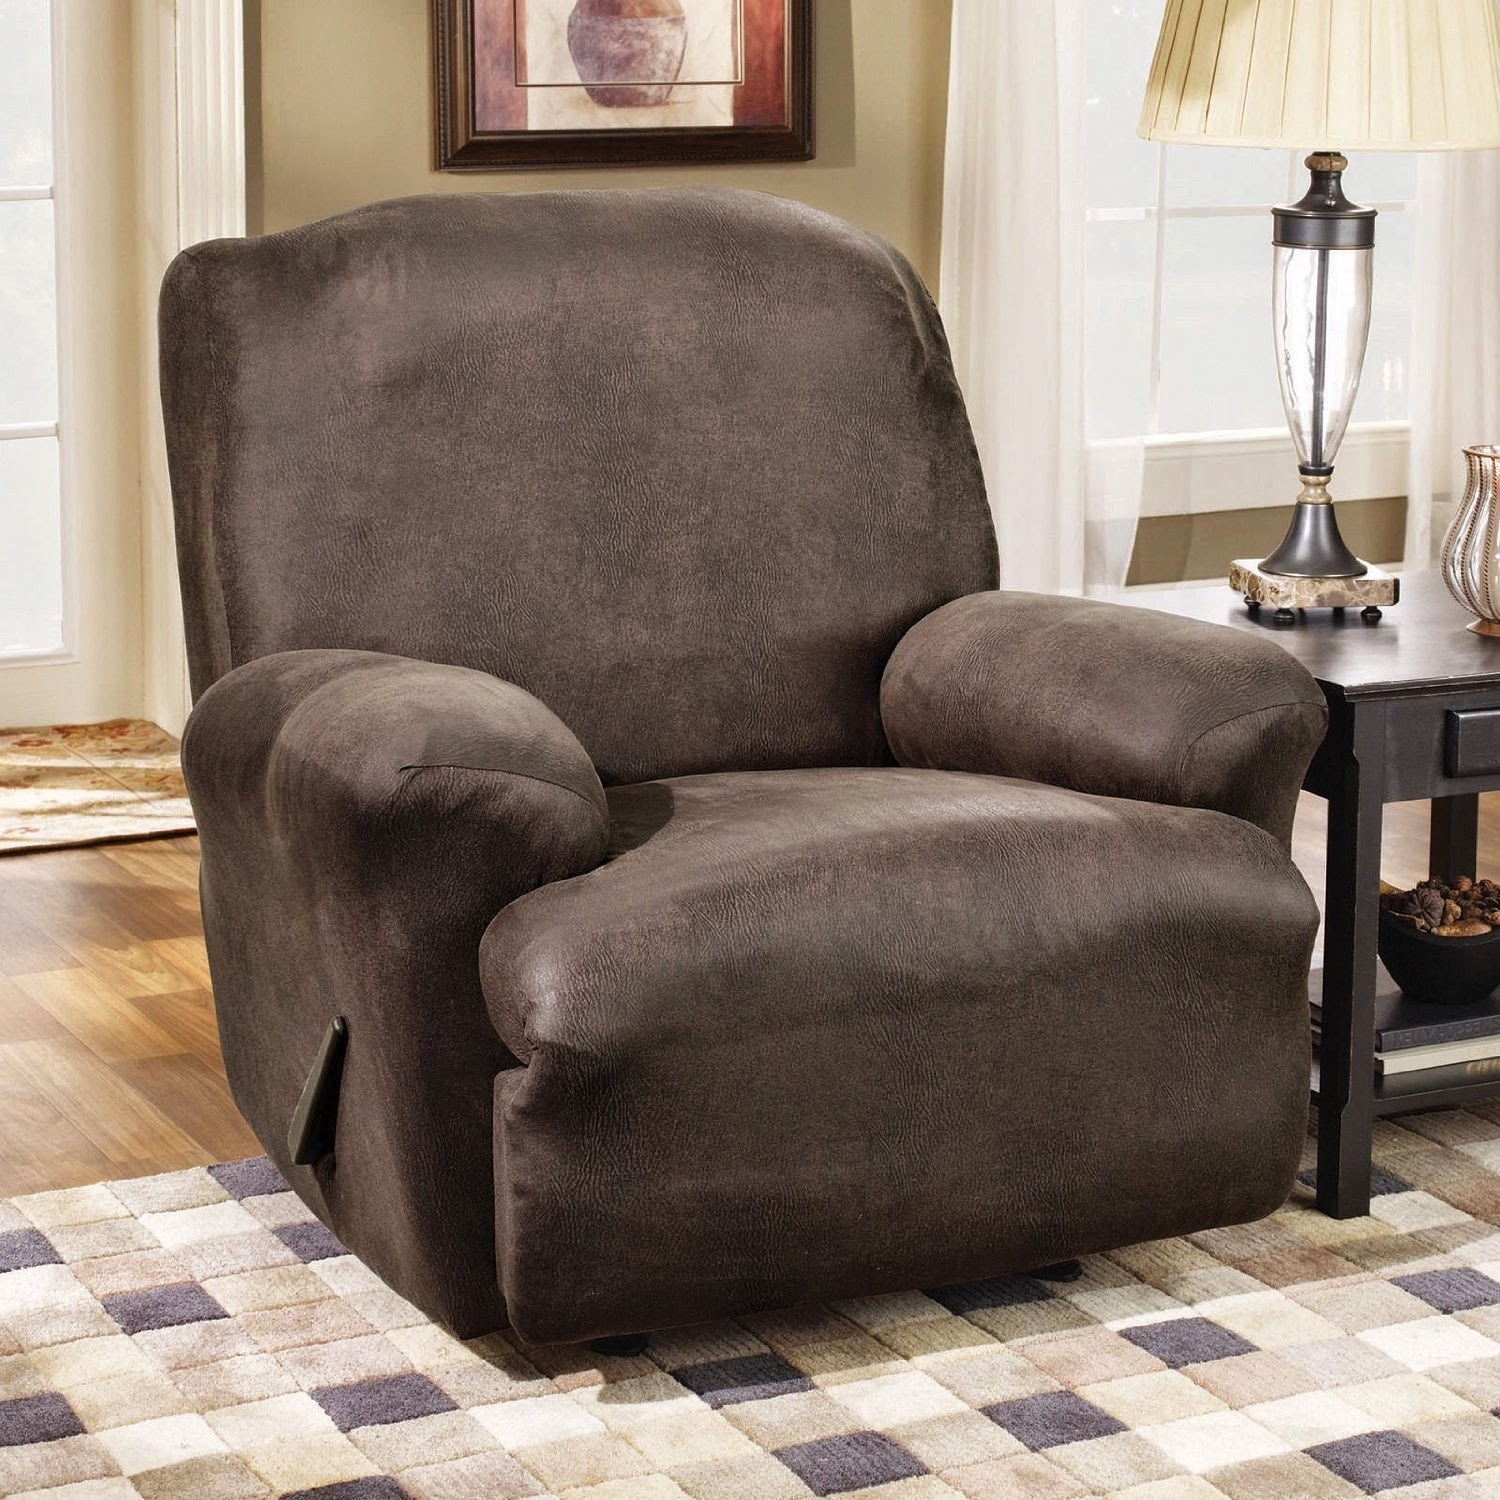 Cheap Recliner Sofas For Sale Sure Fit Dual Reclining Sofa Couch Slipcover